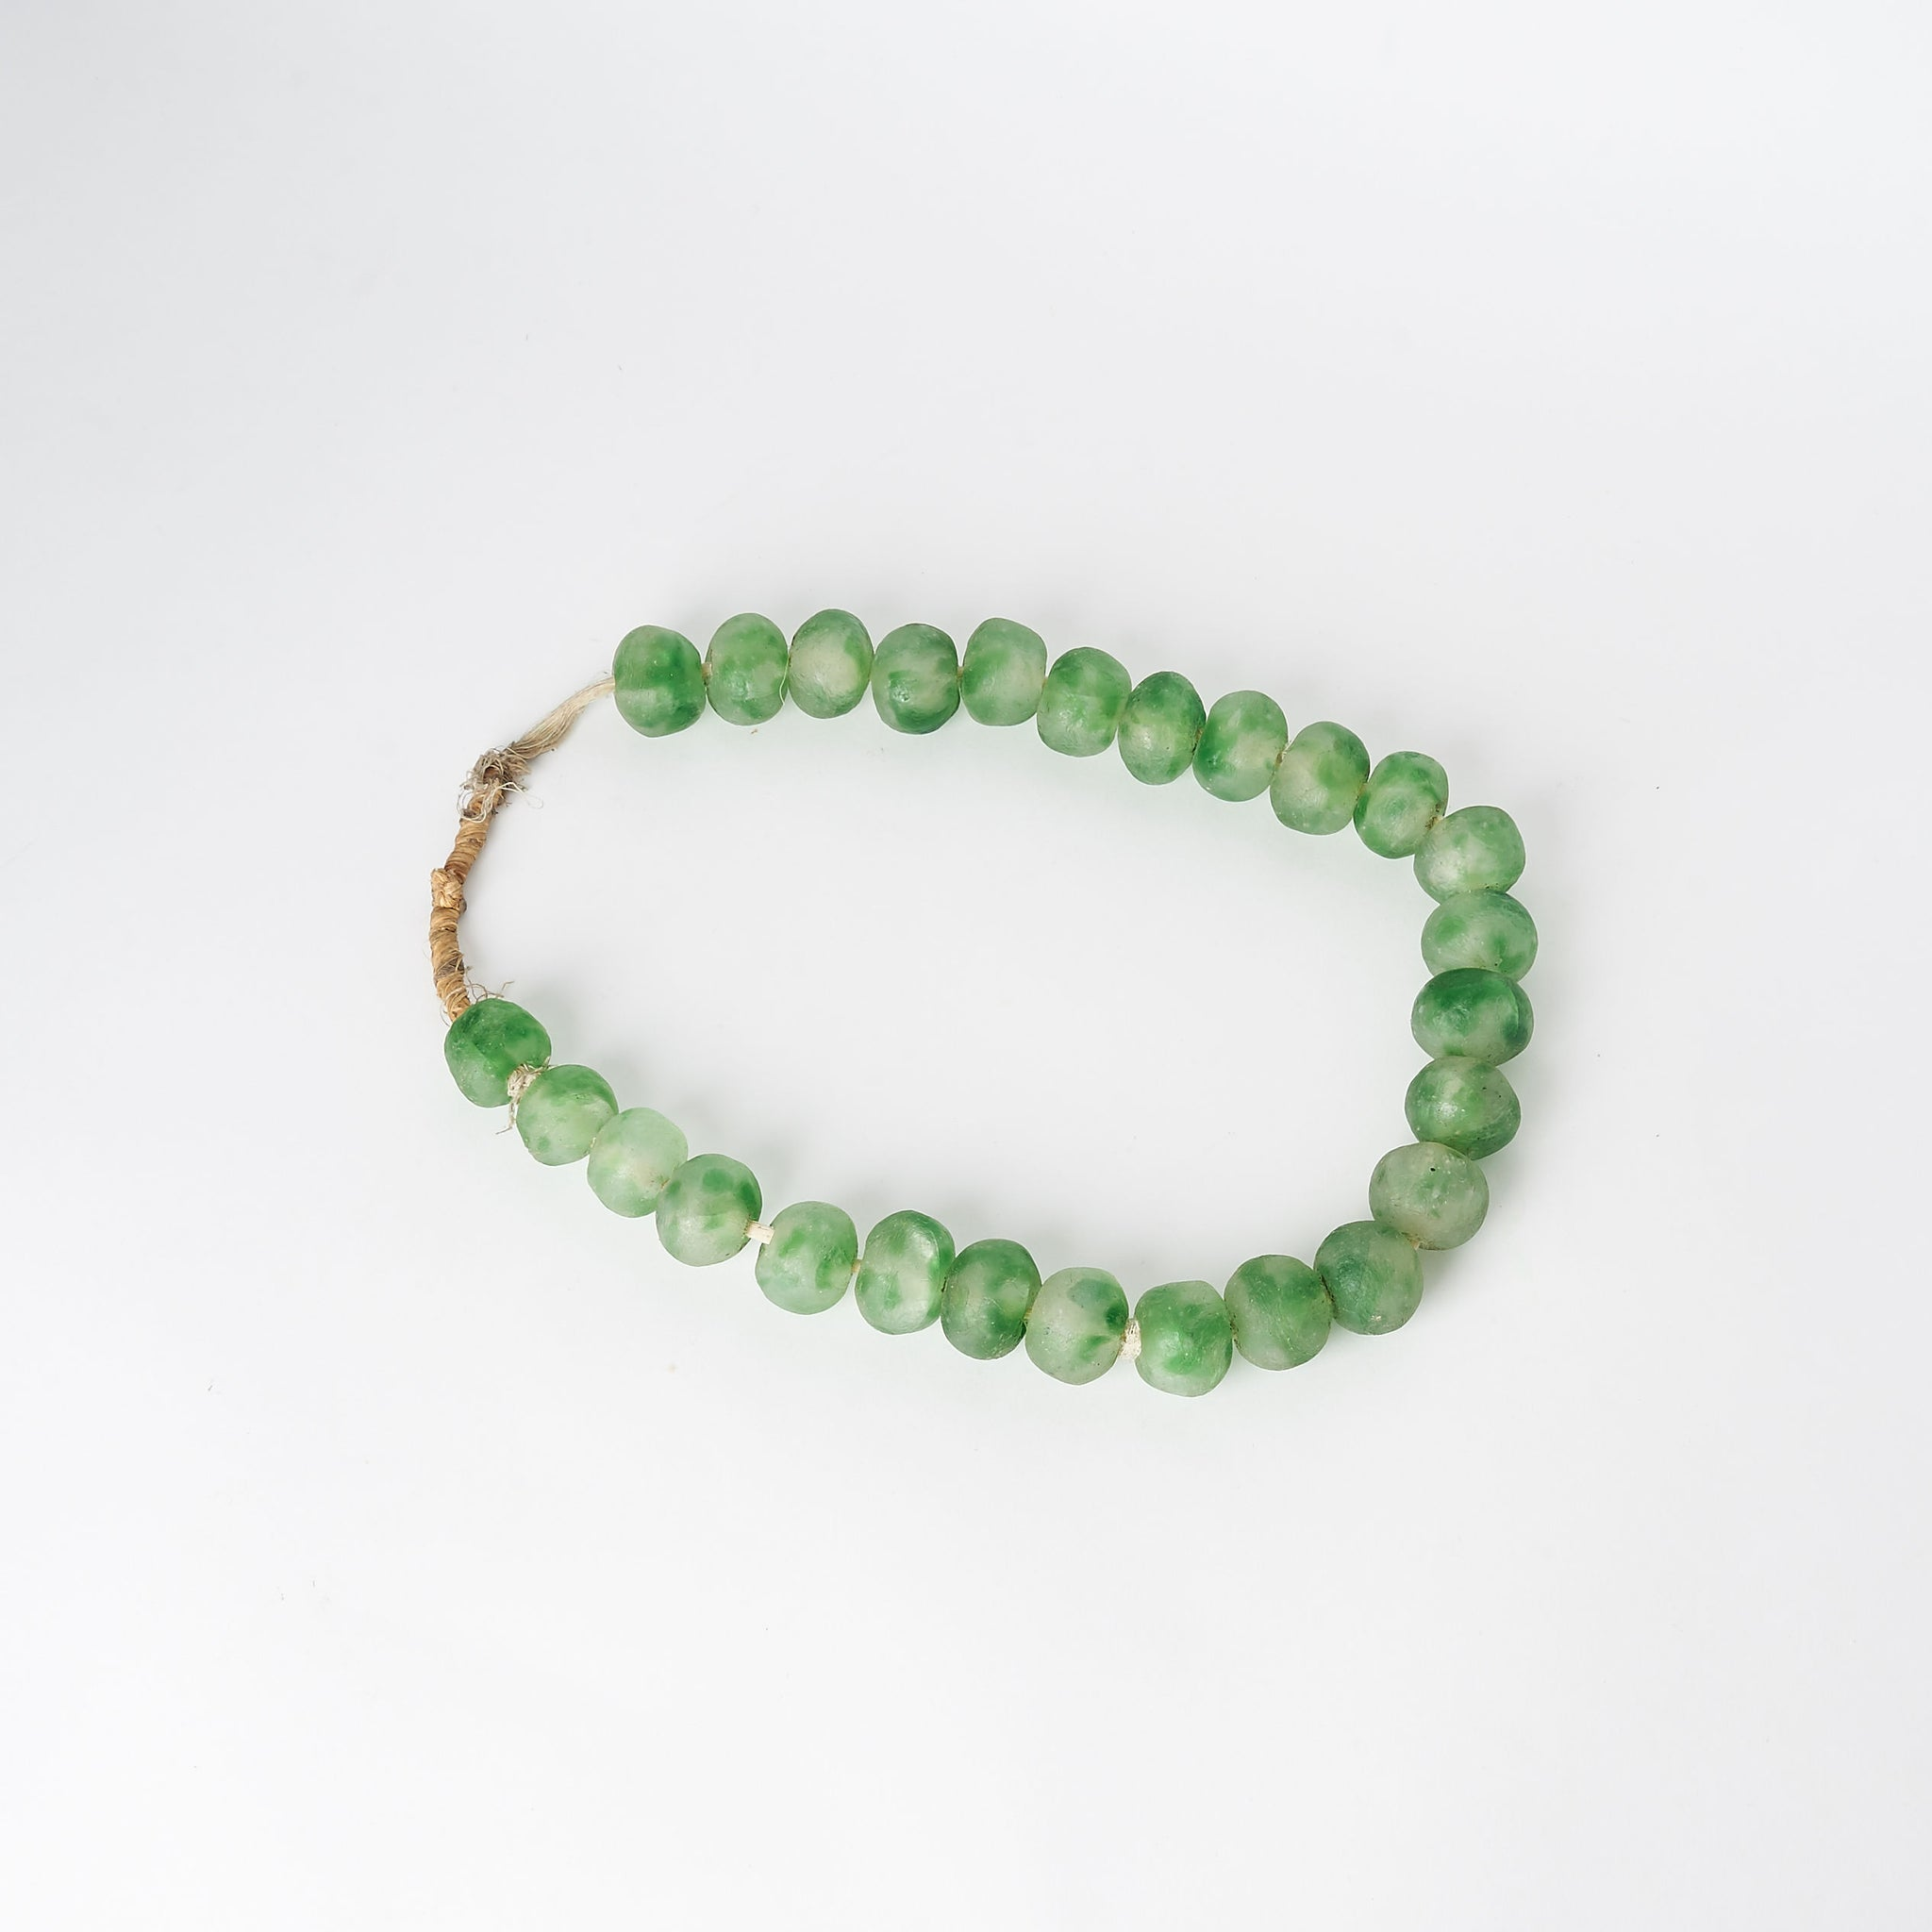 Large Sea Glass Beads in Green